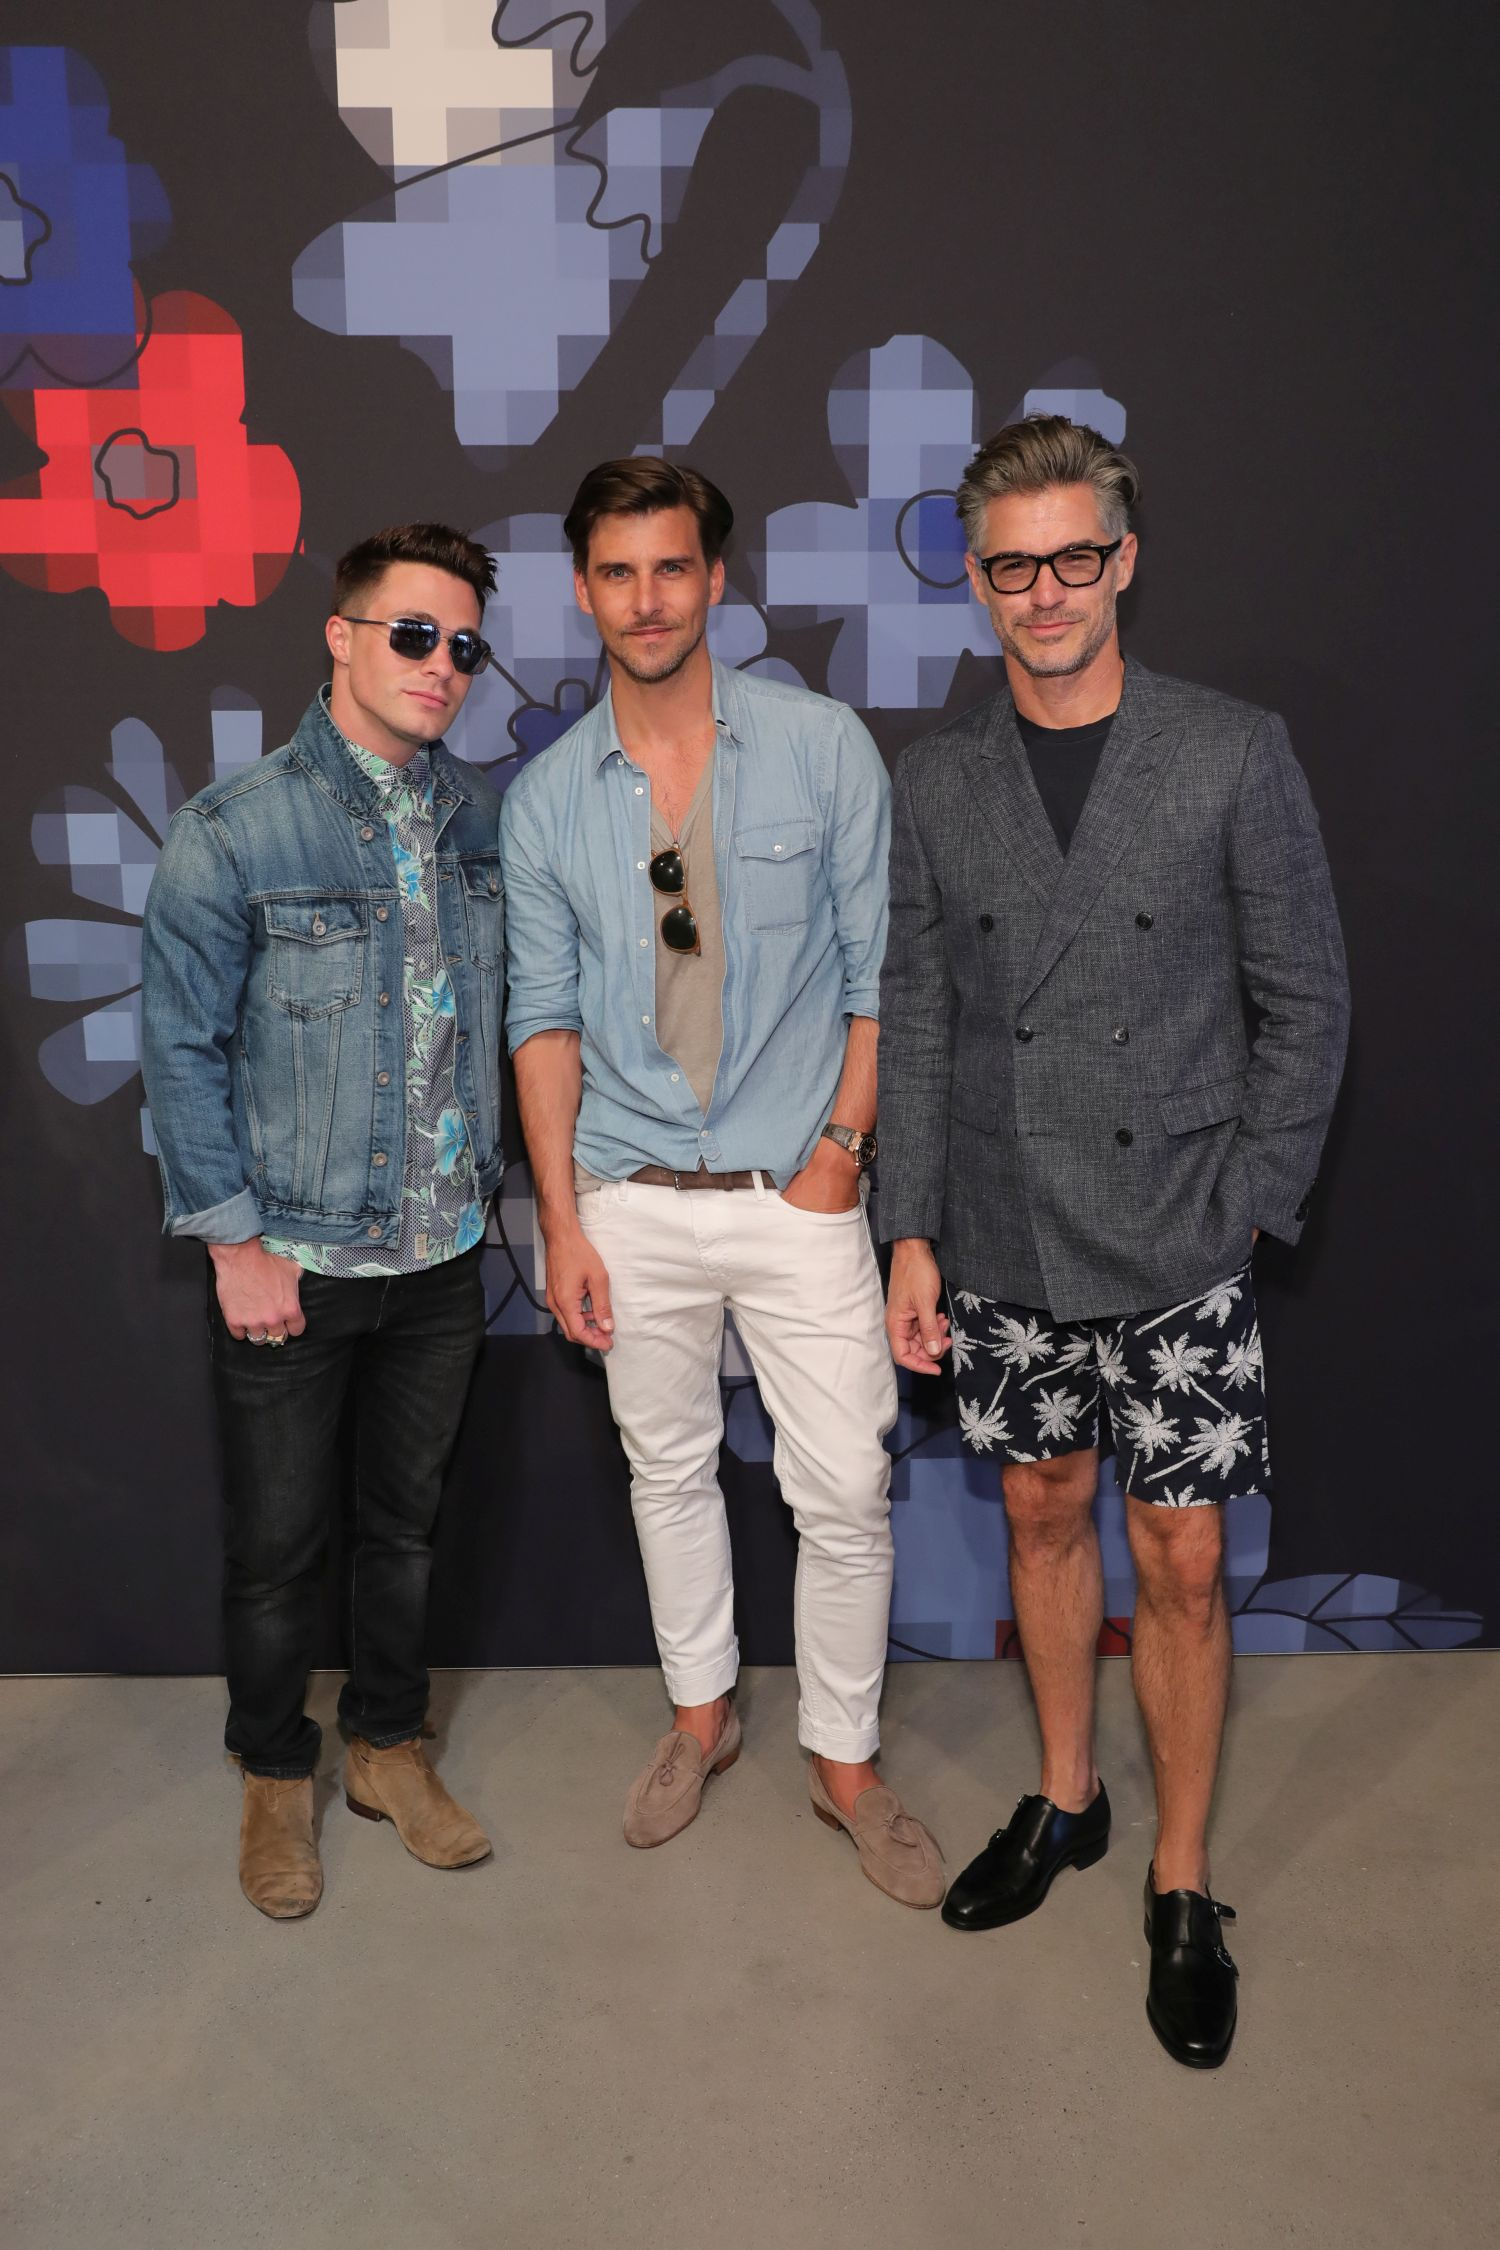 Tommy Hilfiger Spring 2017 Men's Tailored Collection Presentation at Skylight at 60 10th Avenue on July 6, 2016 in New York City.